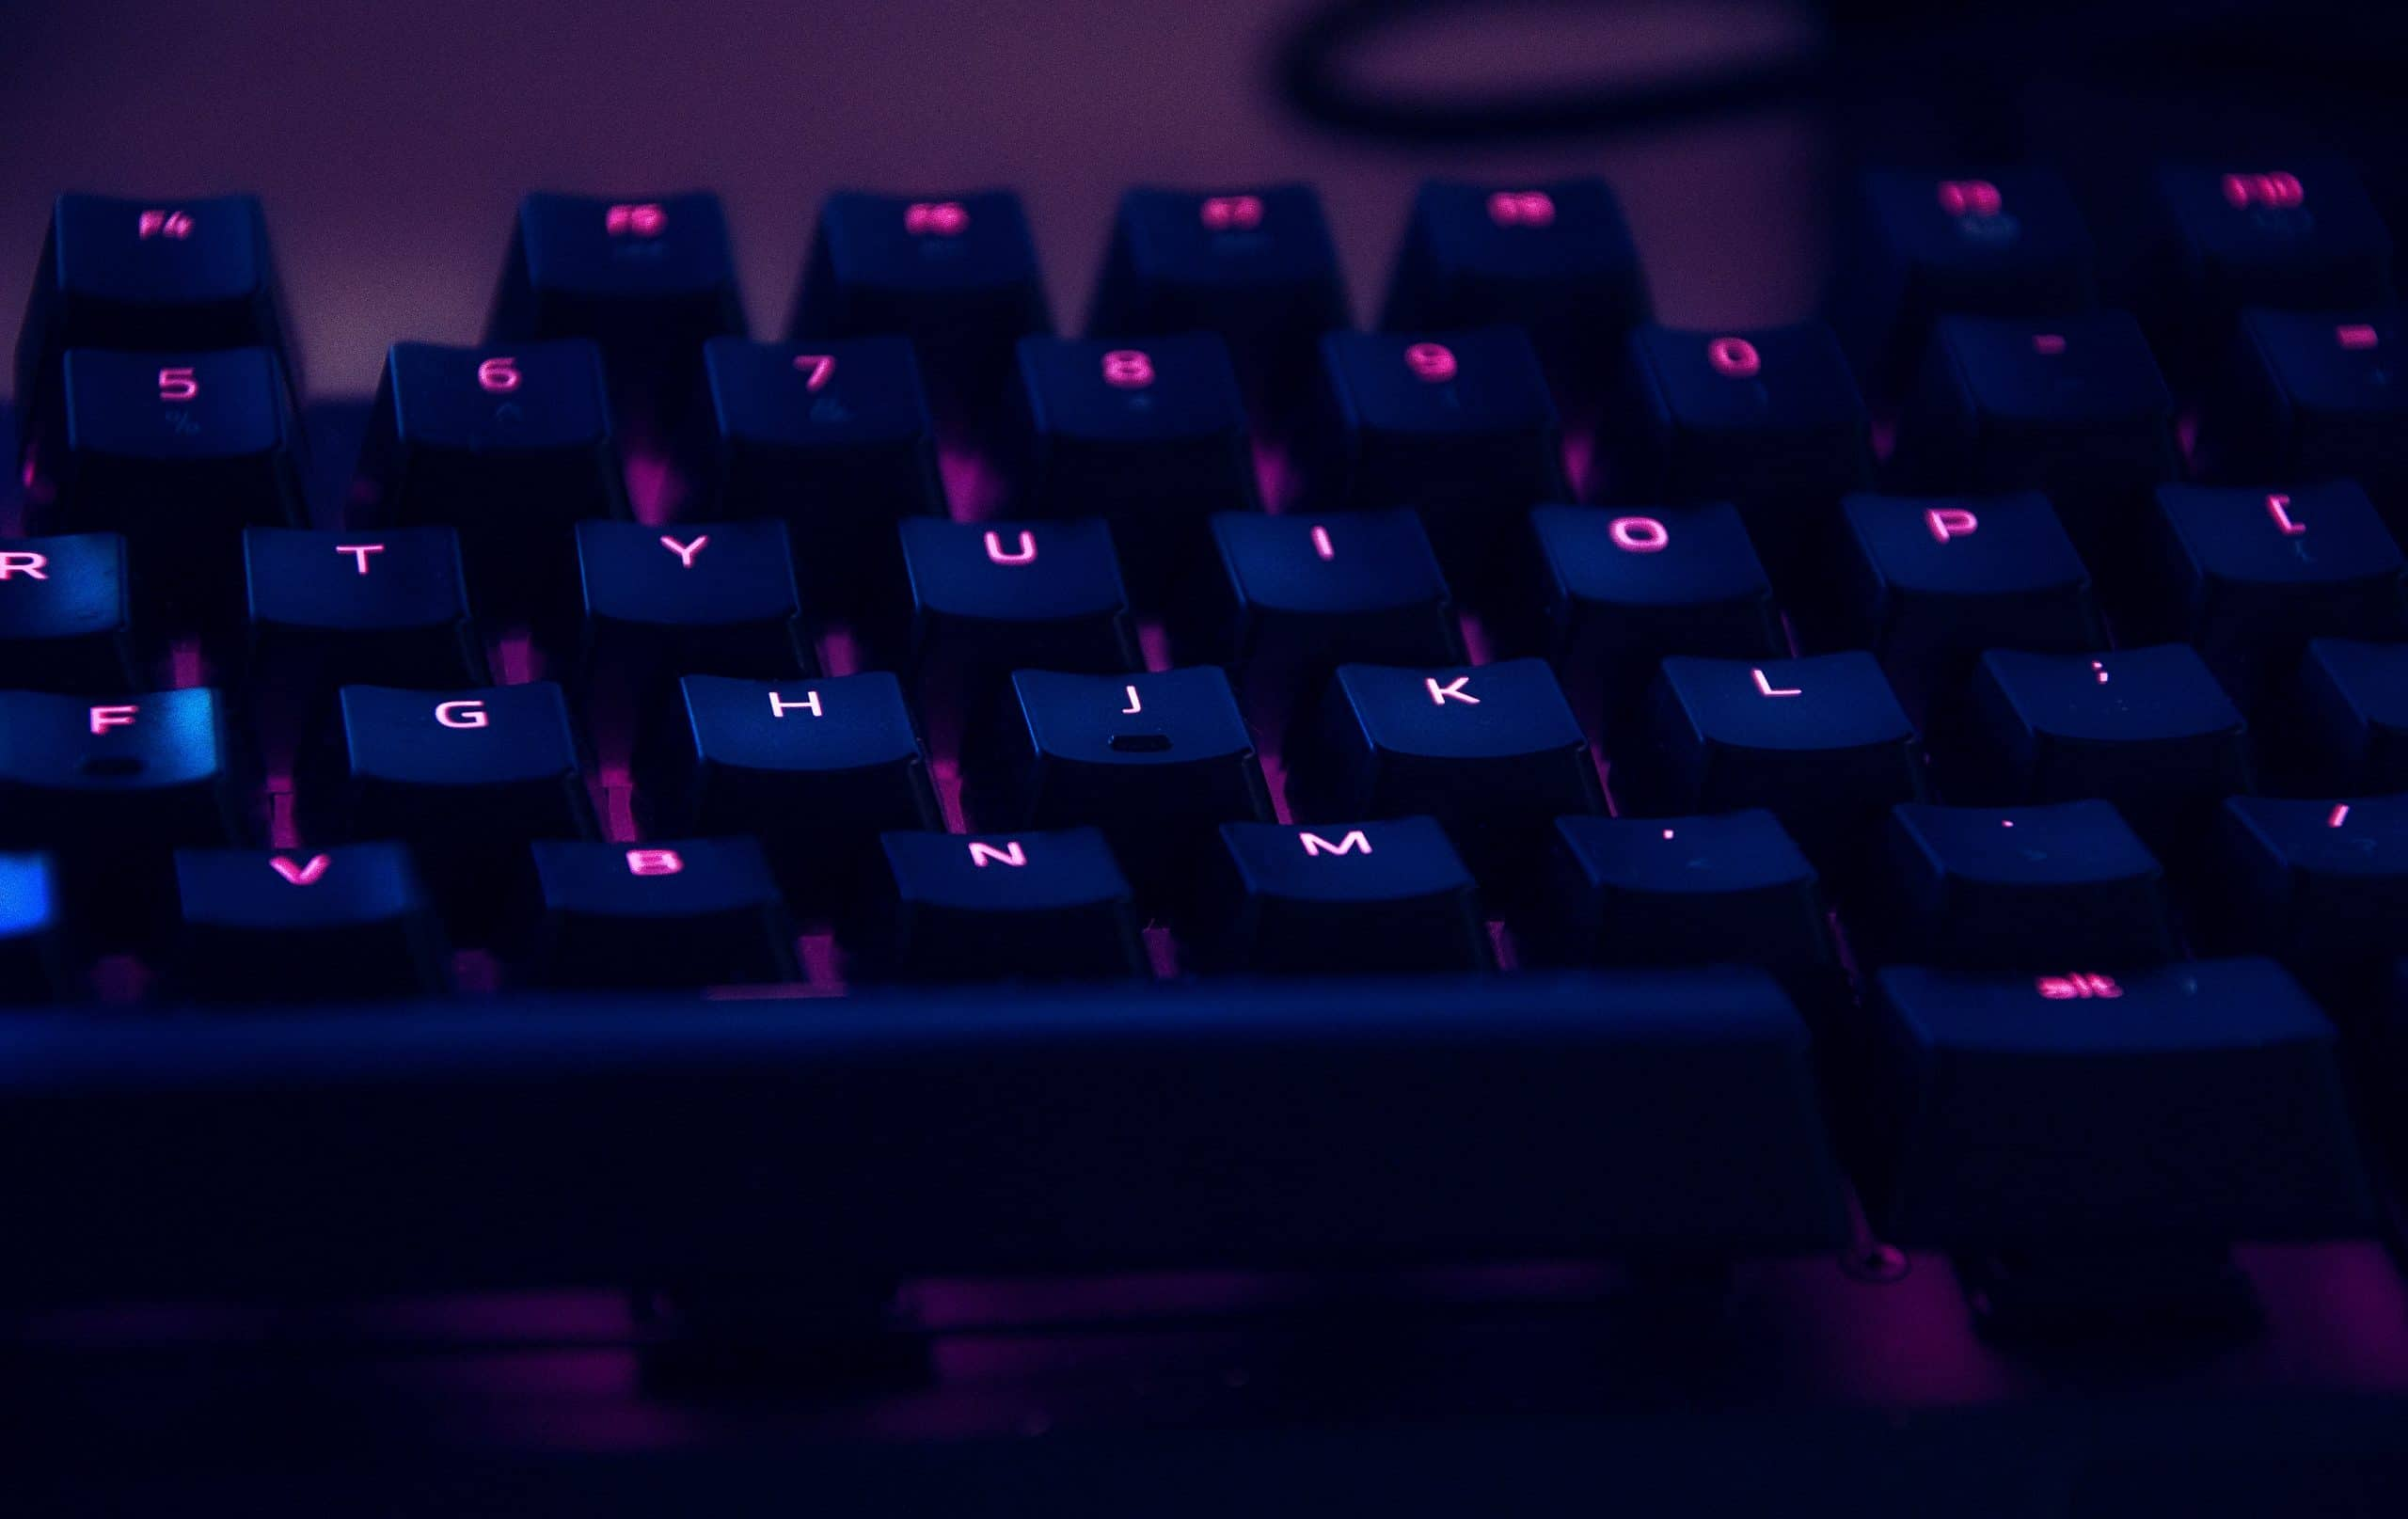 keyboard-with-neon-lighting